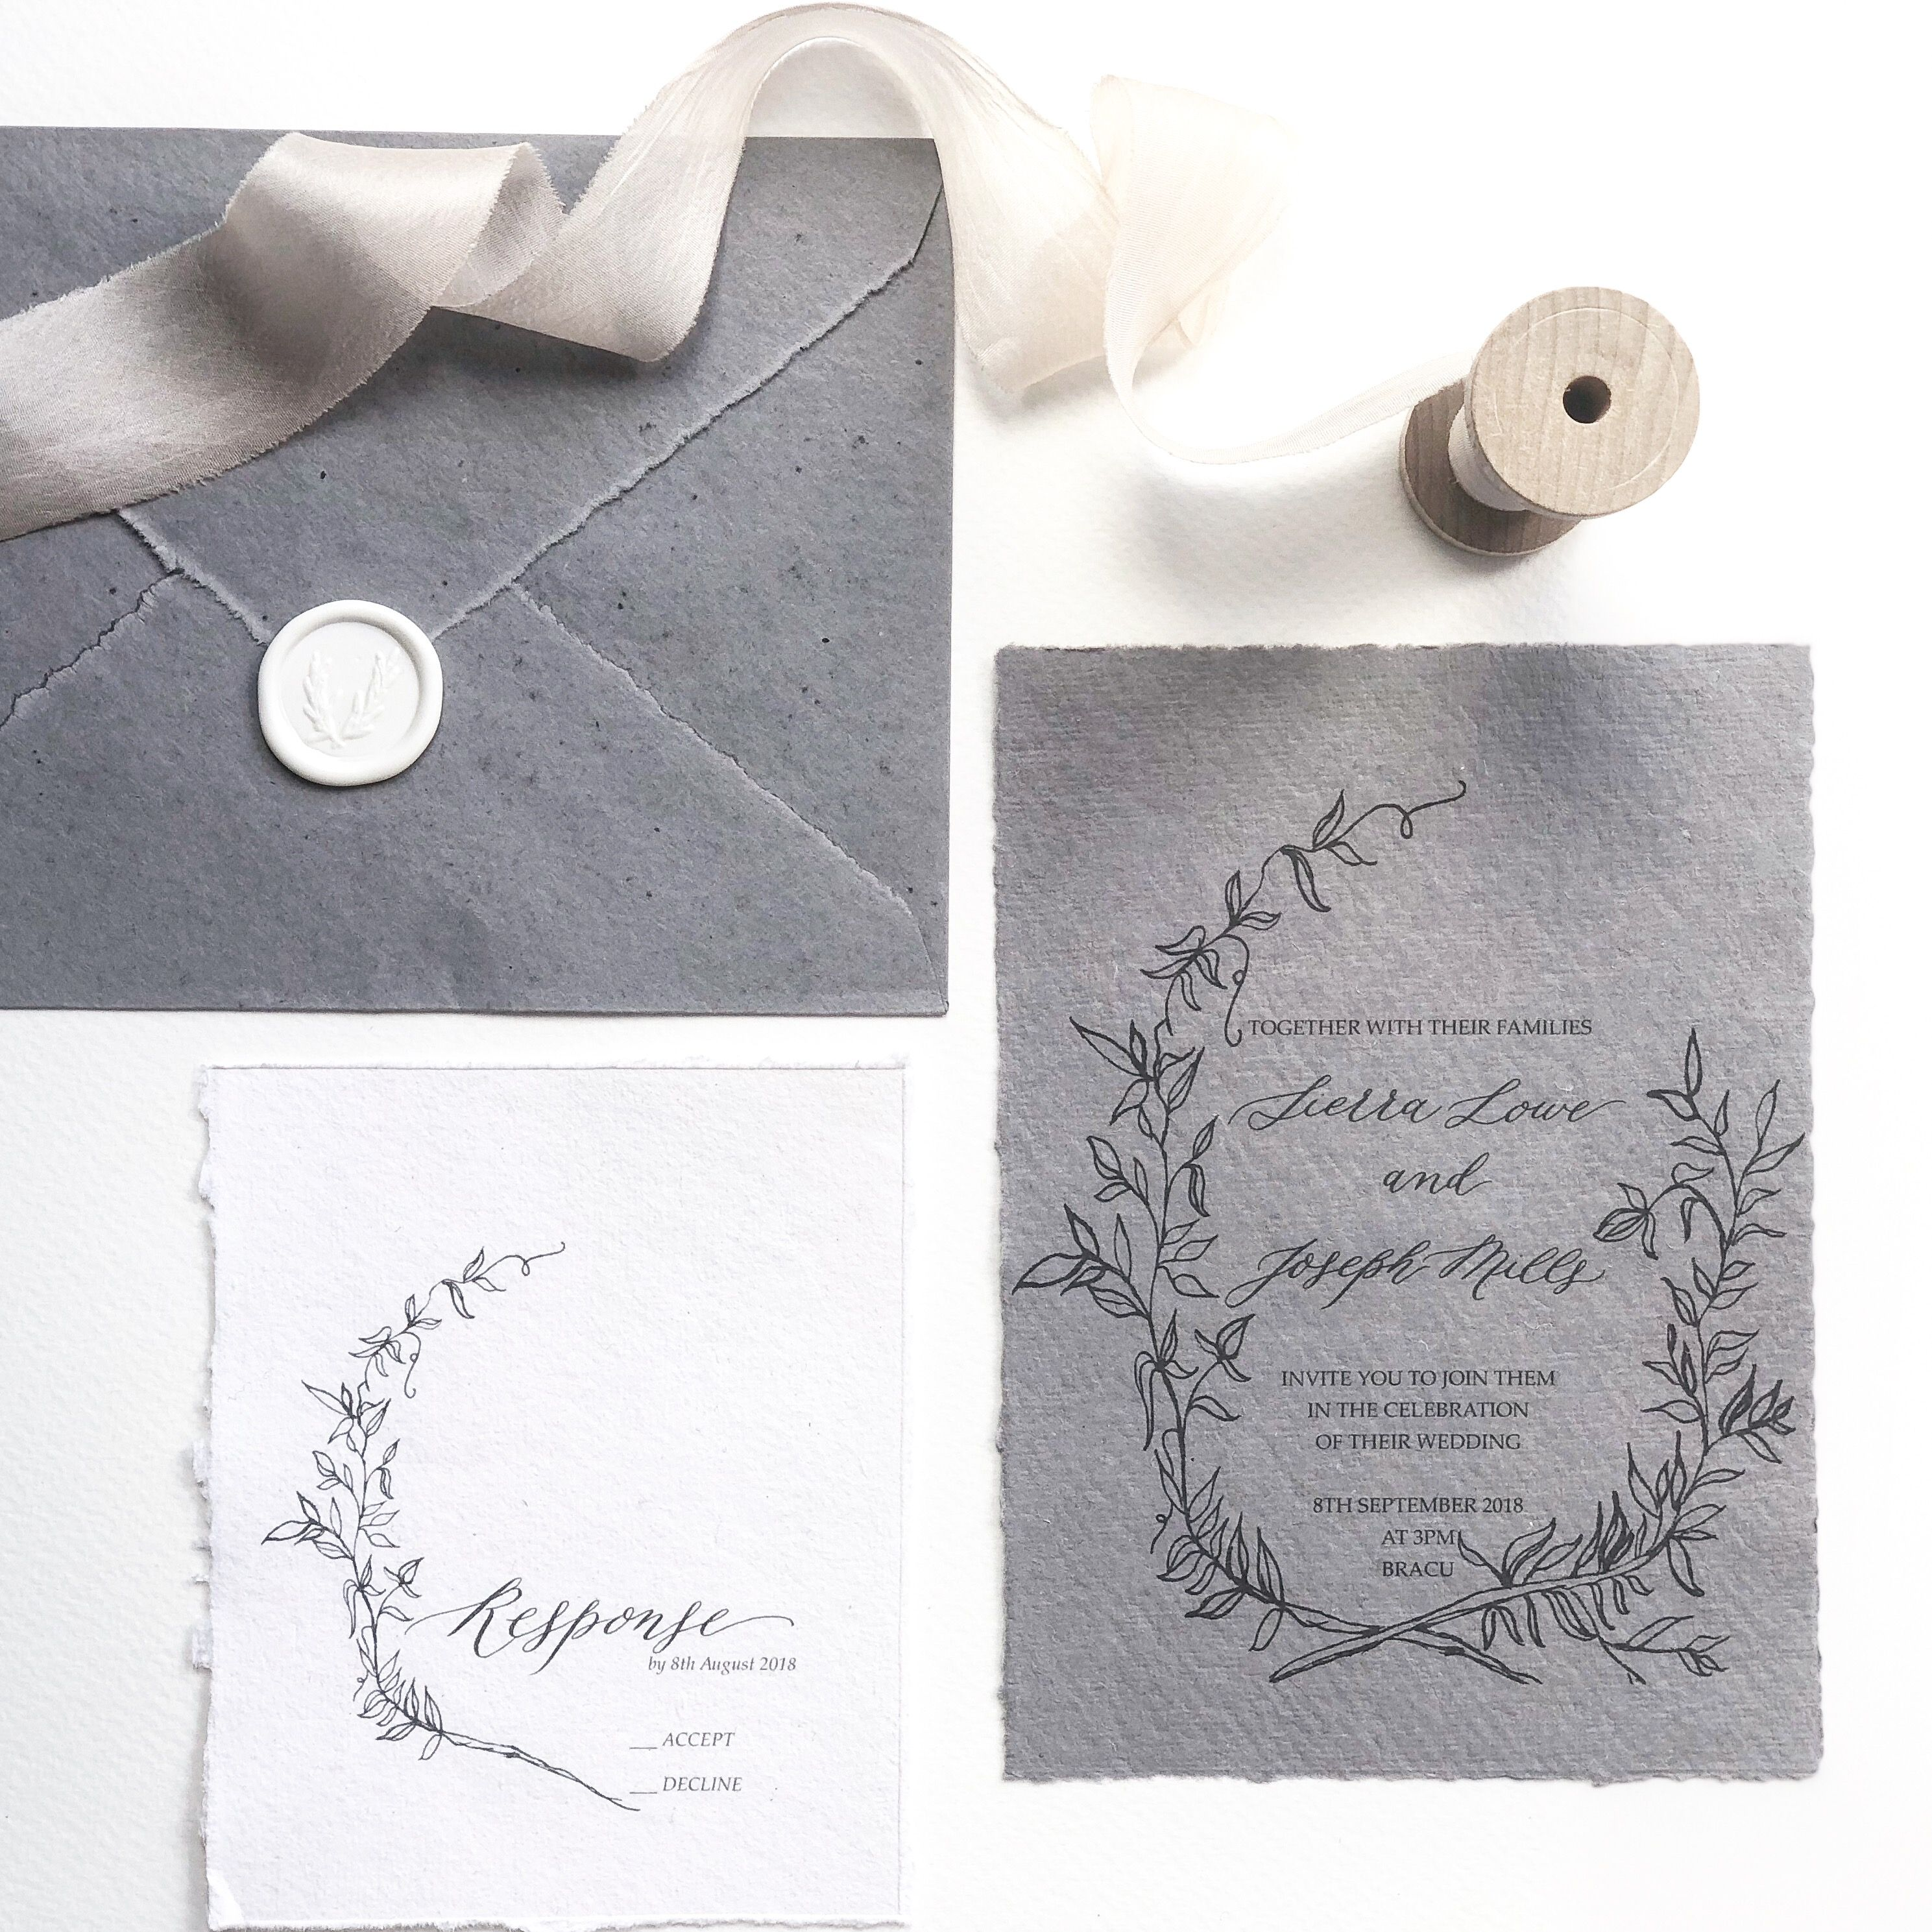 Matchy Matchy Letterpress Invite And Handmade Envelope: Calligraphy Wedding Invitation. Floral Wreath, Black On